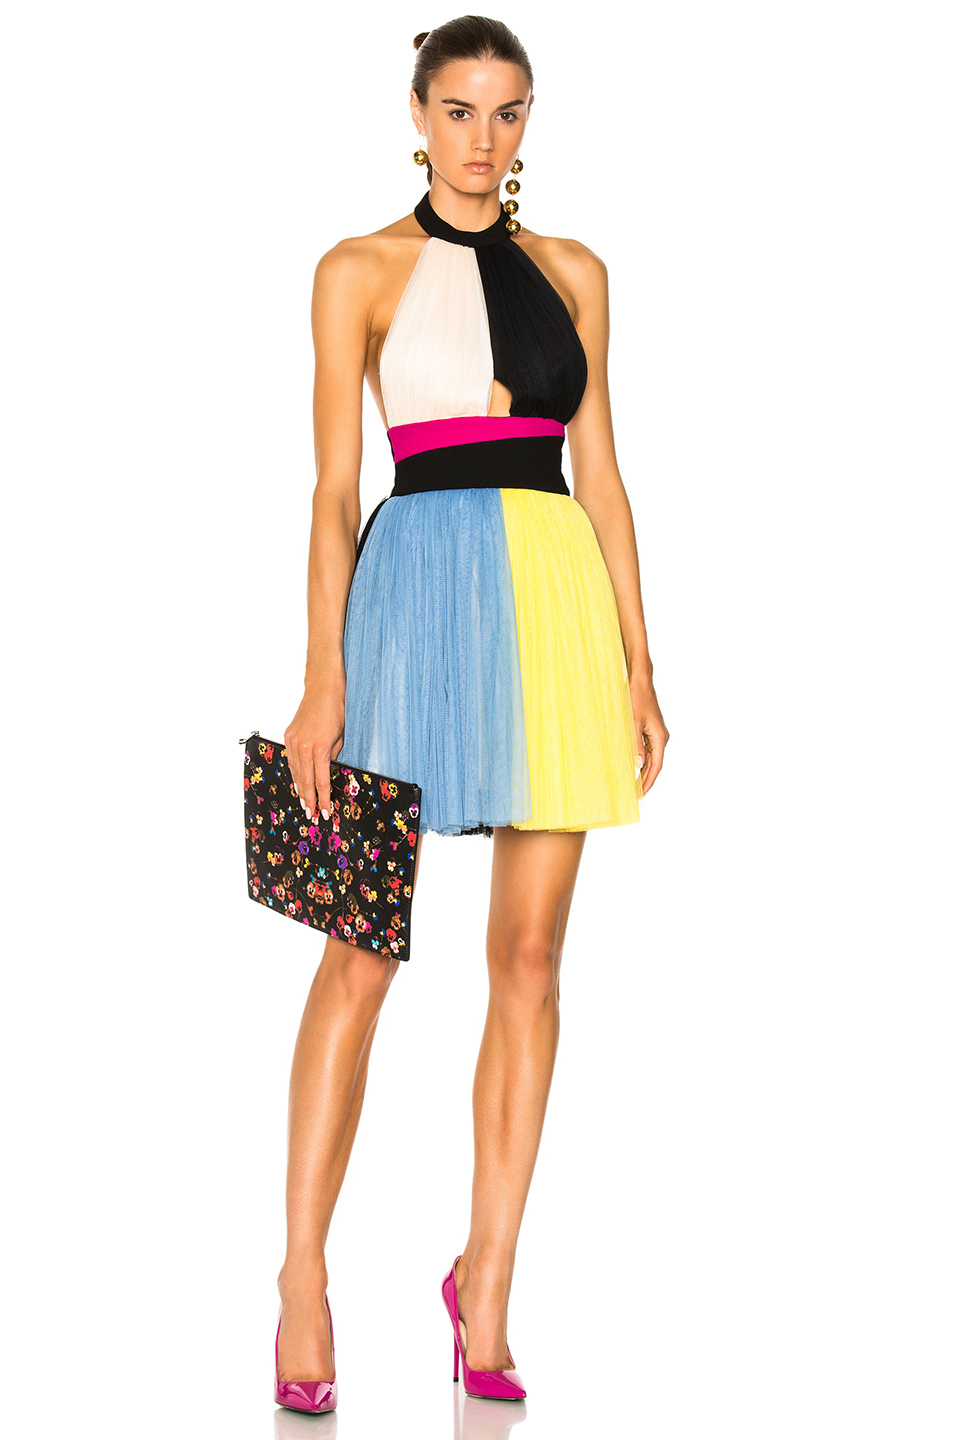 Fausto Puglisi Color Block Short Halter Top Tulle Dress in Black,Blue,Yellow